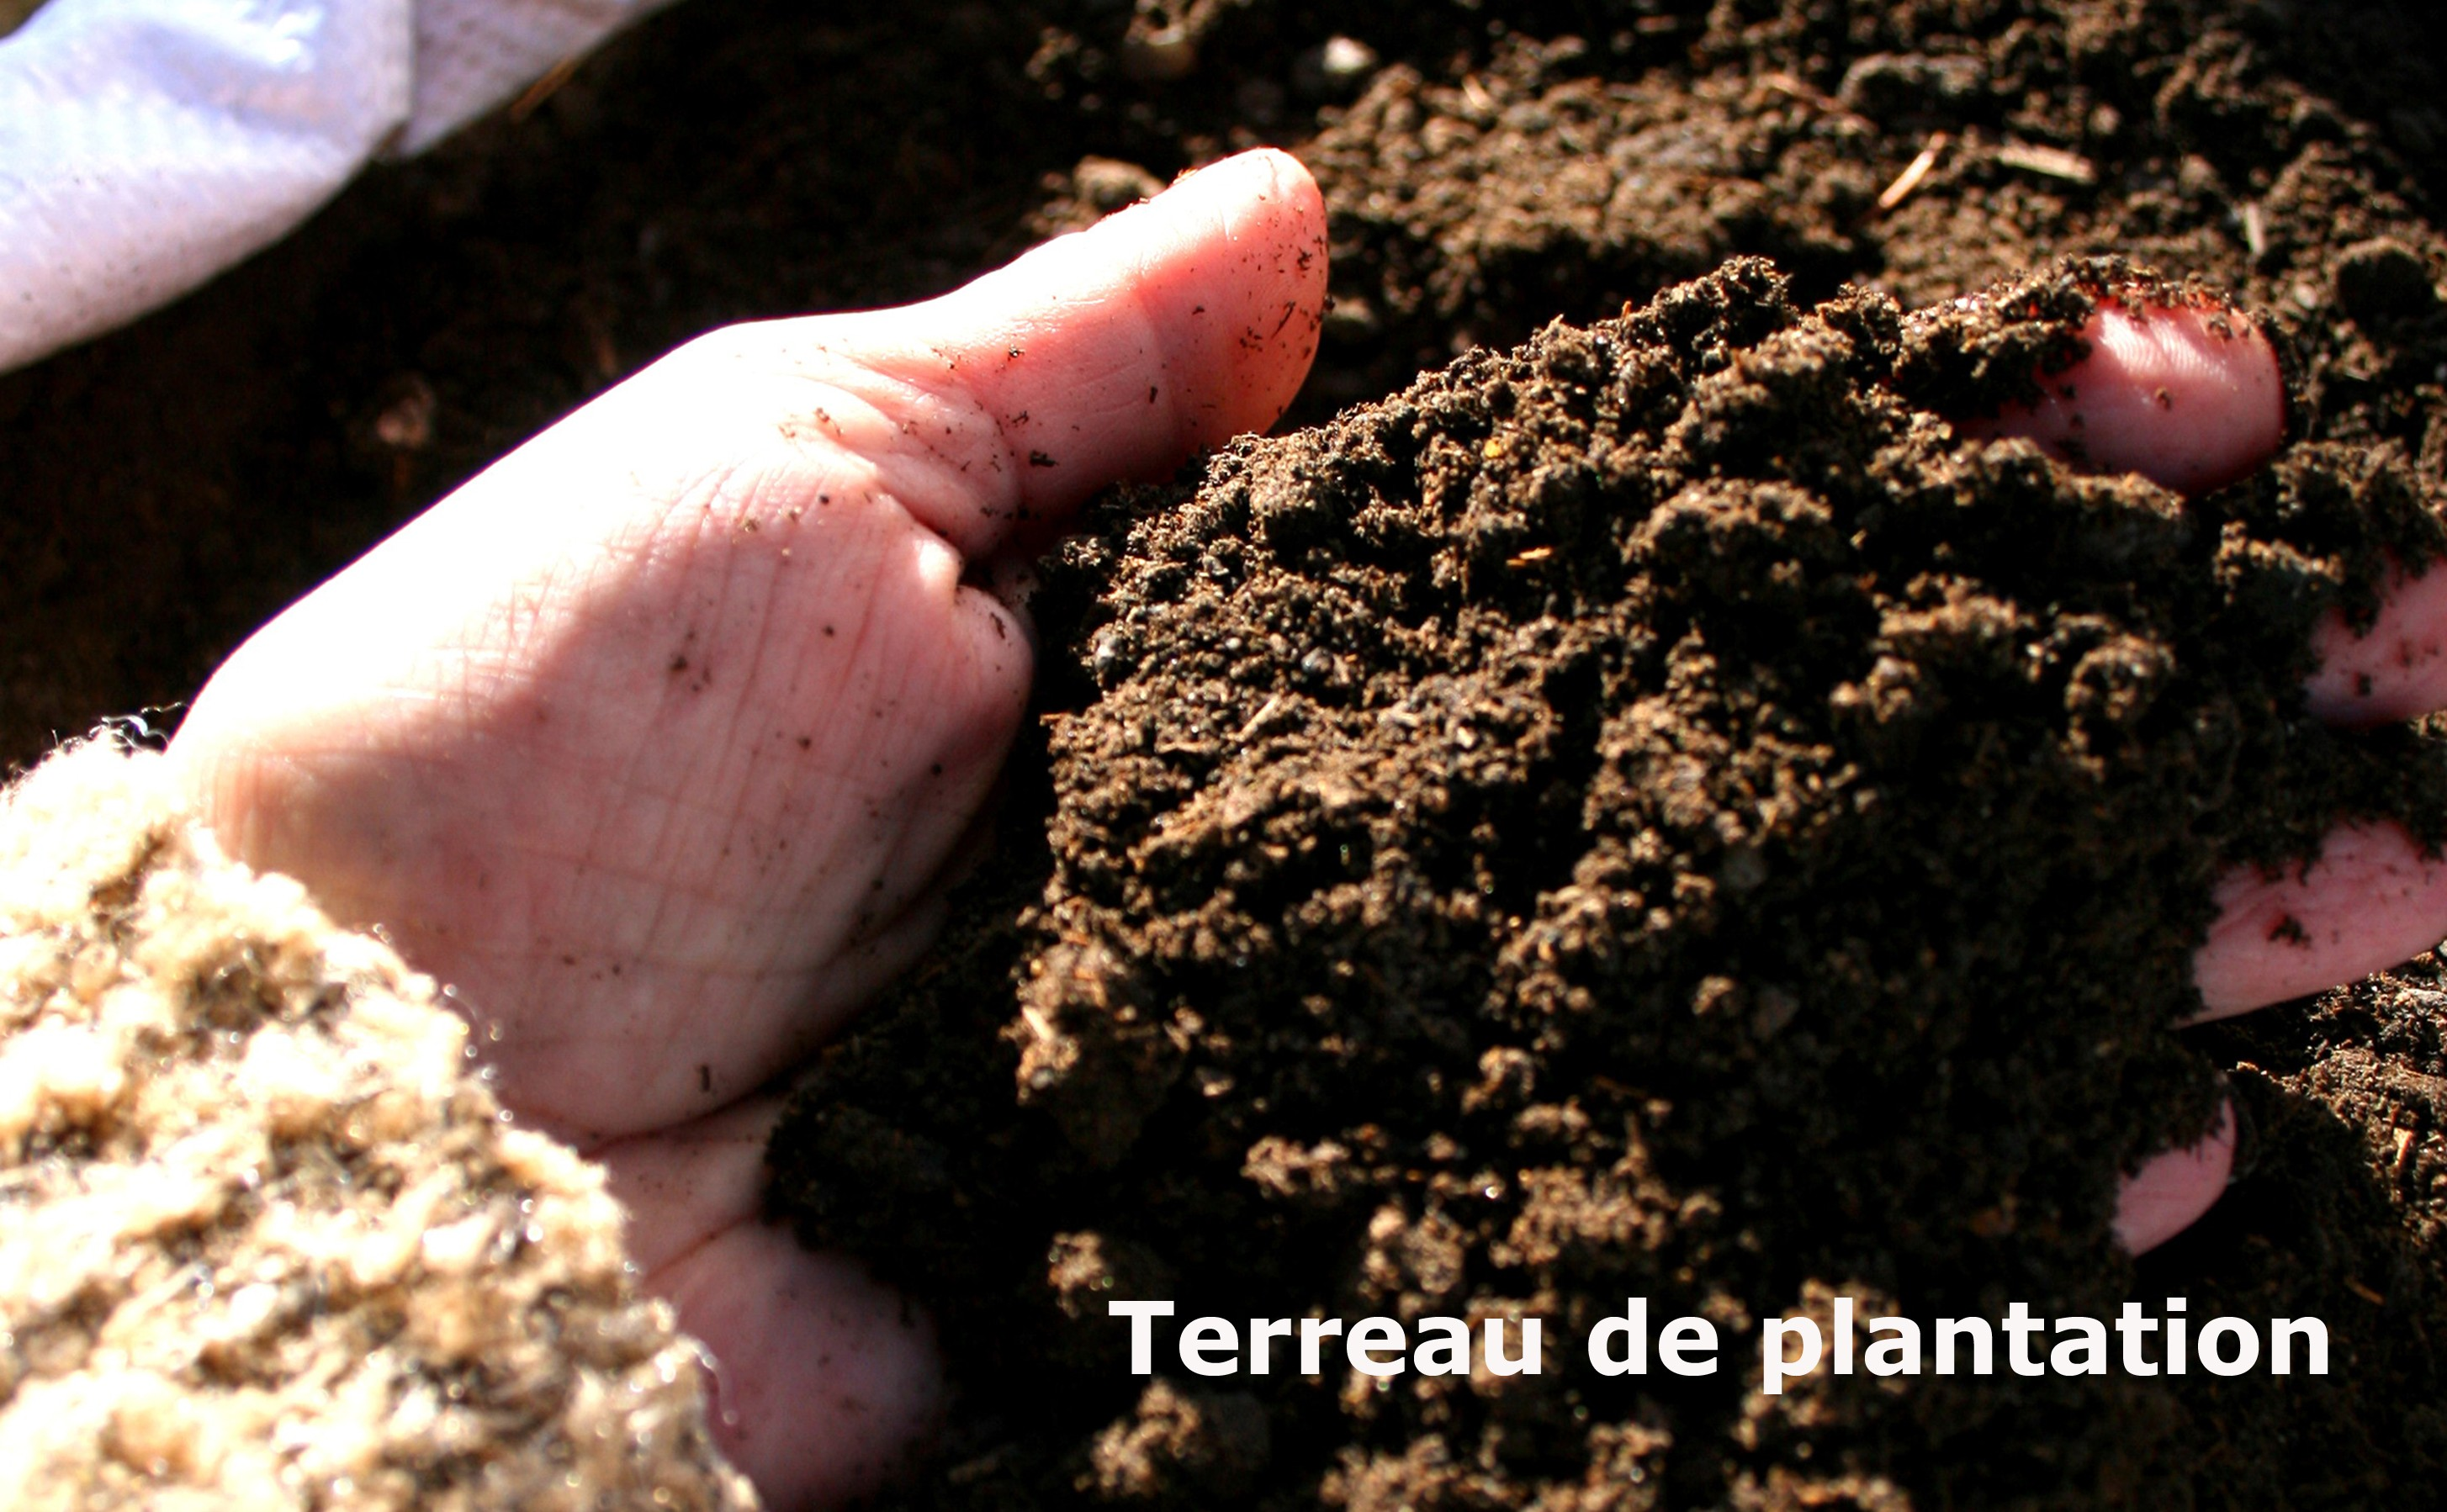 Terreau de plantation